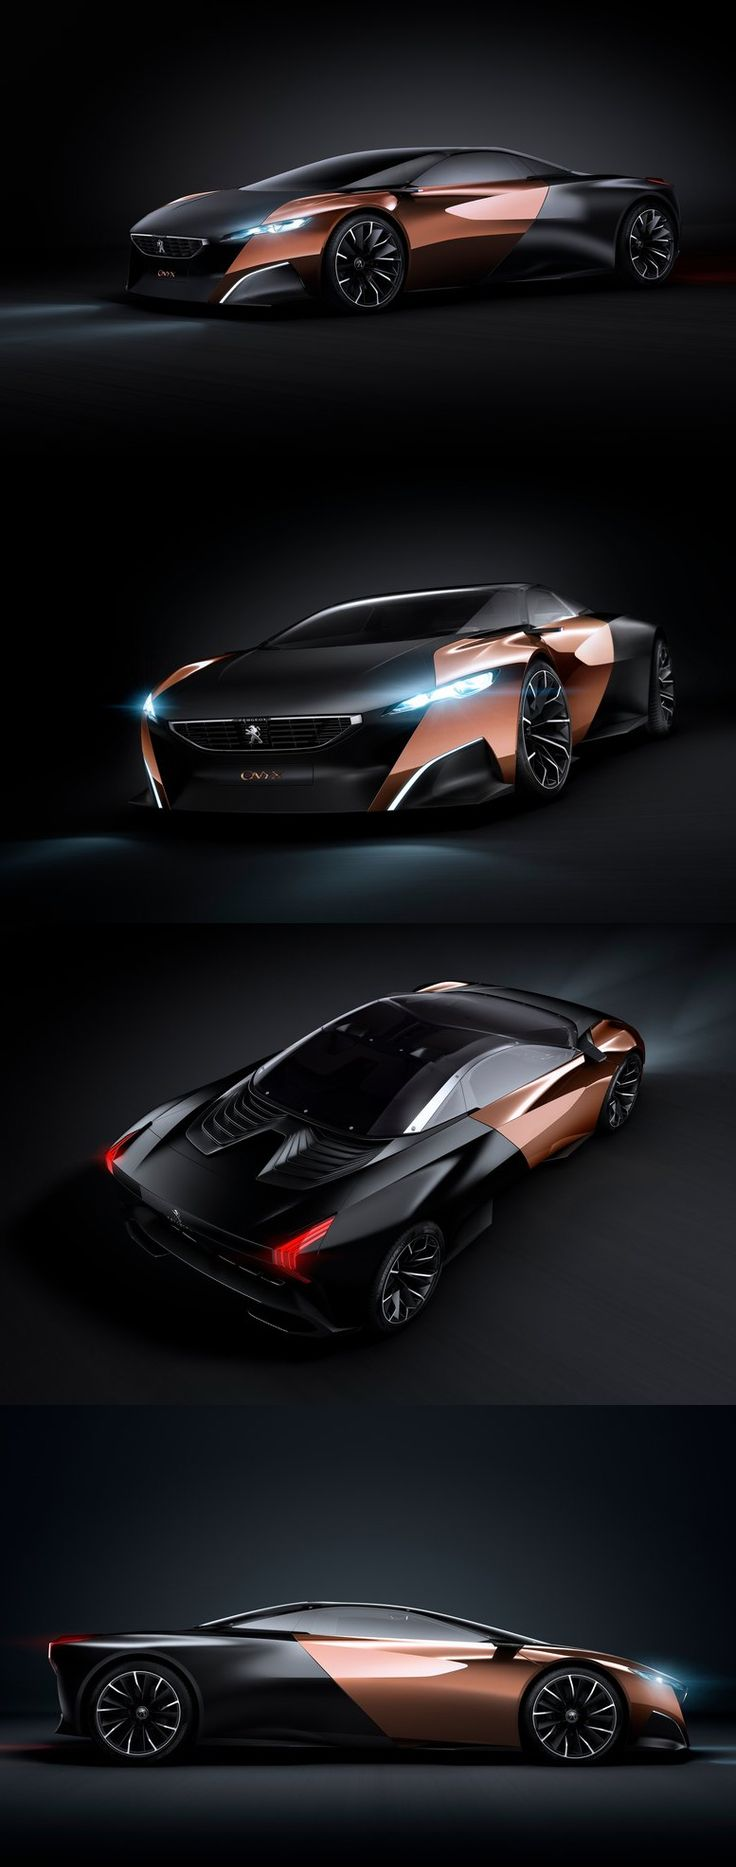 ♂ black & copper concept car Peugeot ONYX - Sportive, hybride and futuriste from http://www.zeutch.com/design/peugeot-onyx-41113